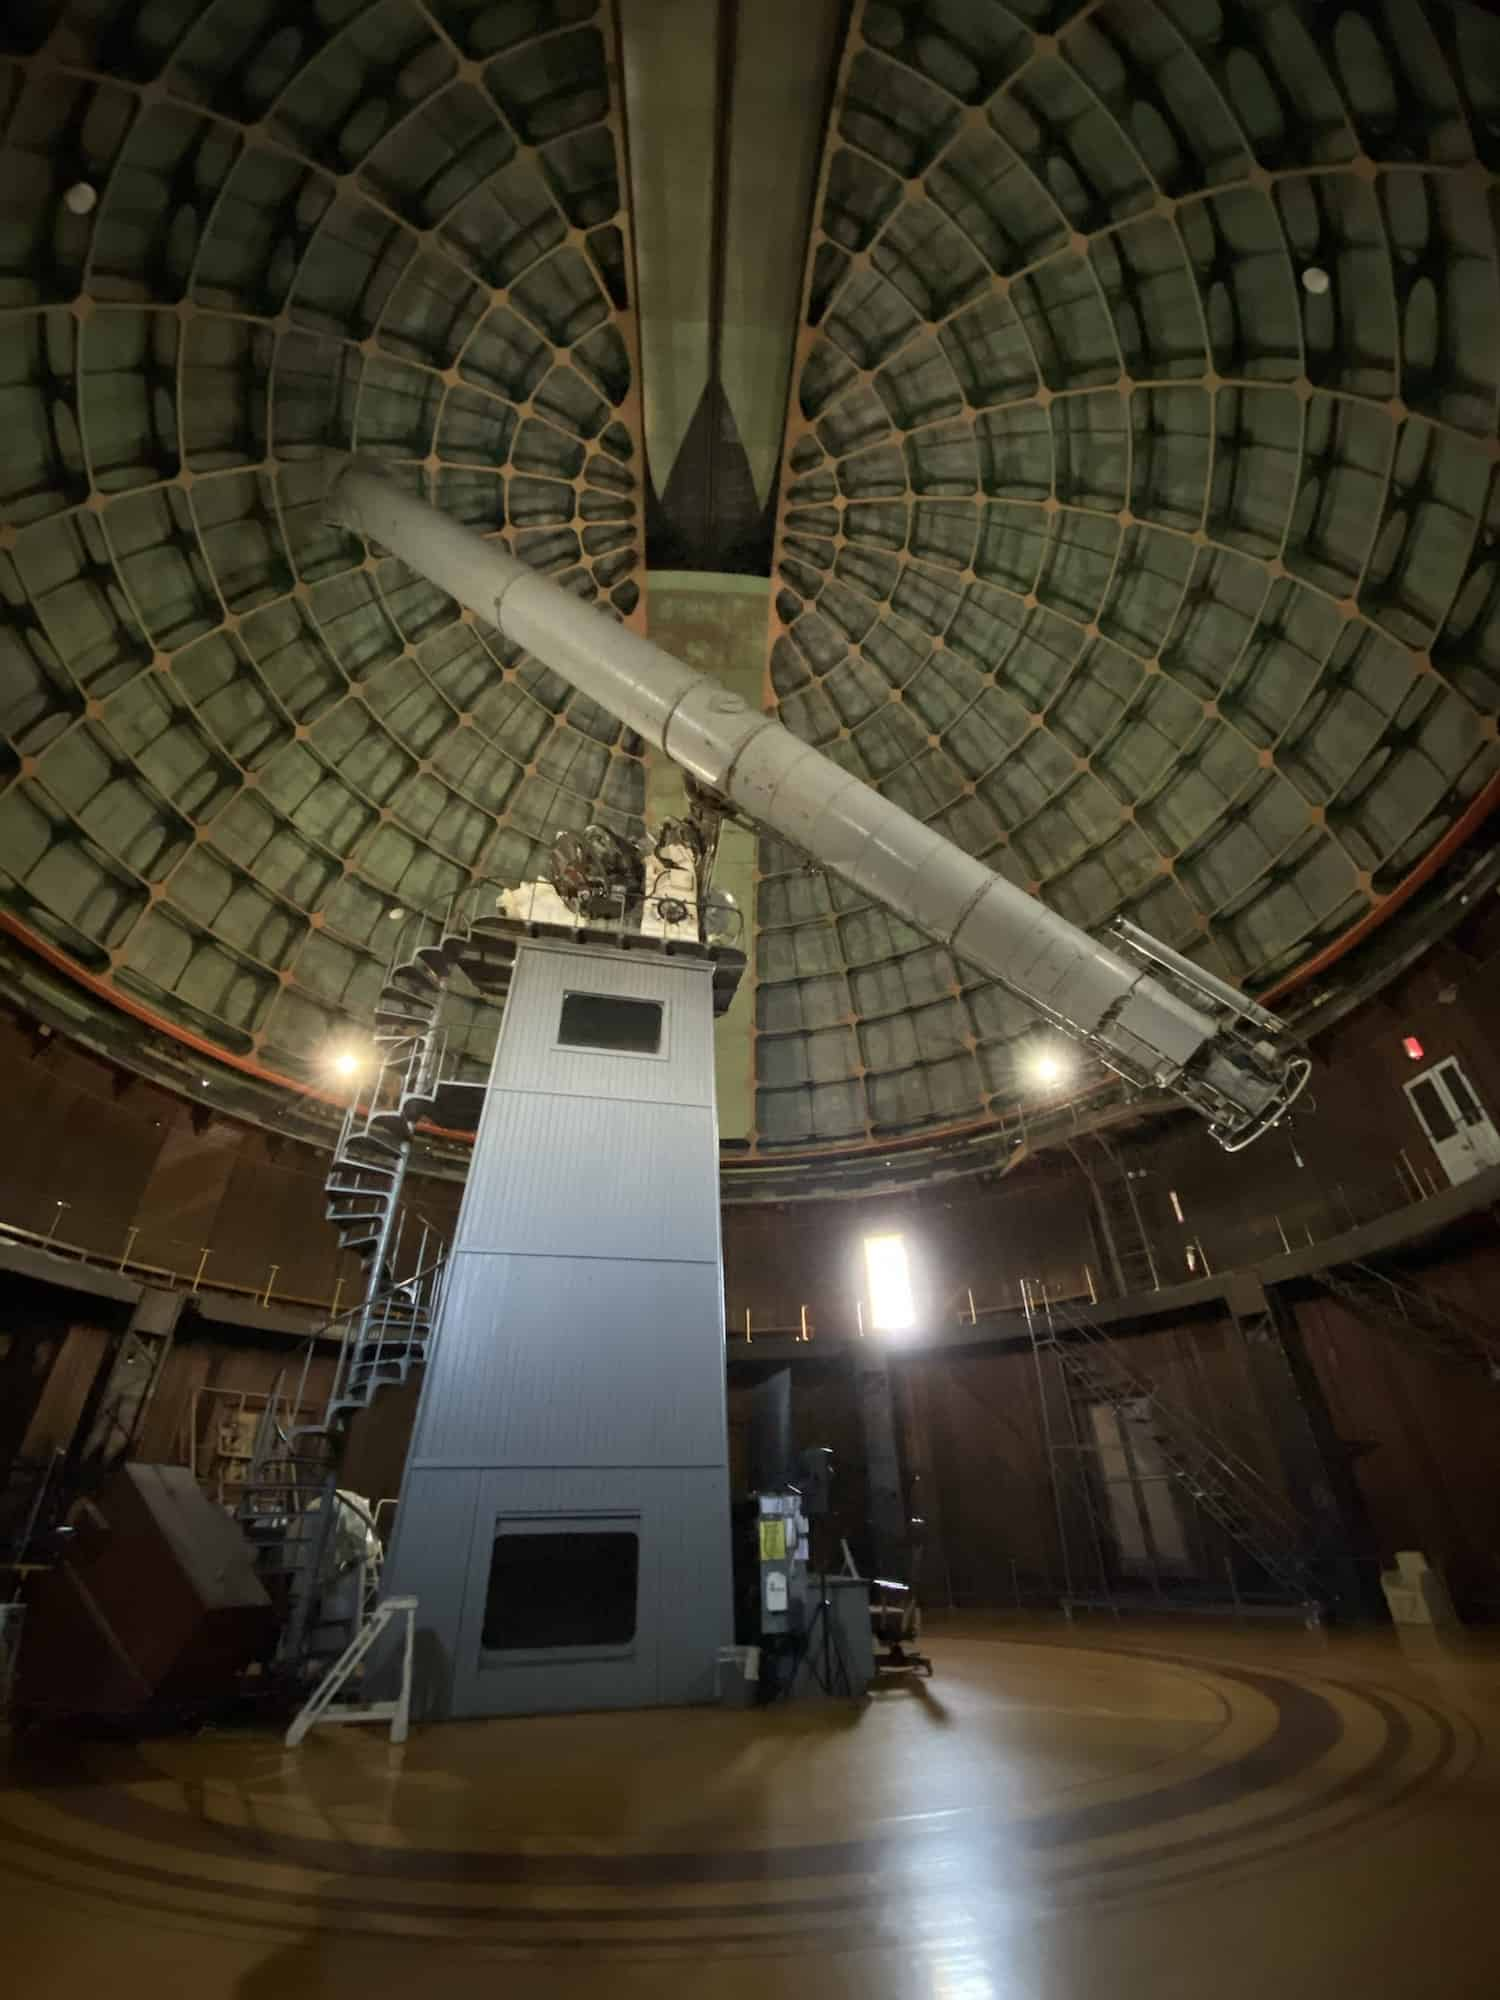 3 Days in San Jose - Lick Observatory Grand Telescope